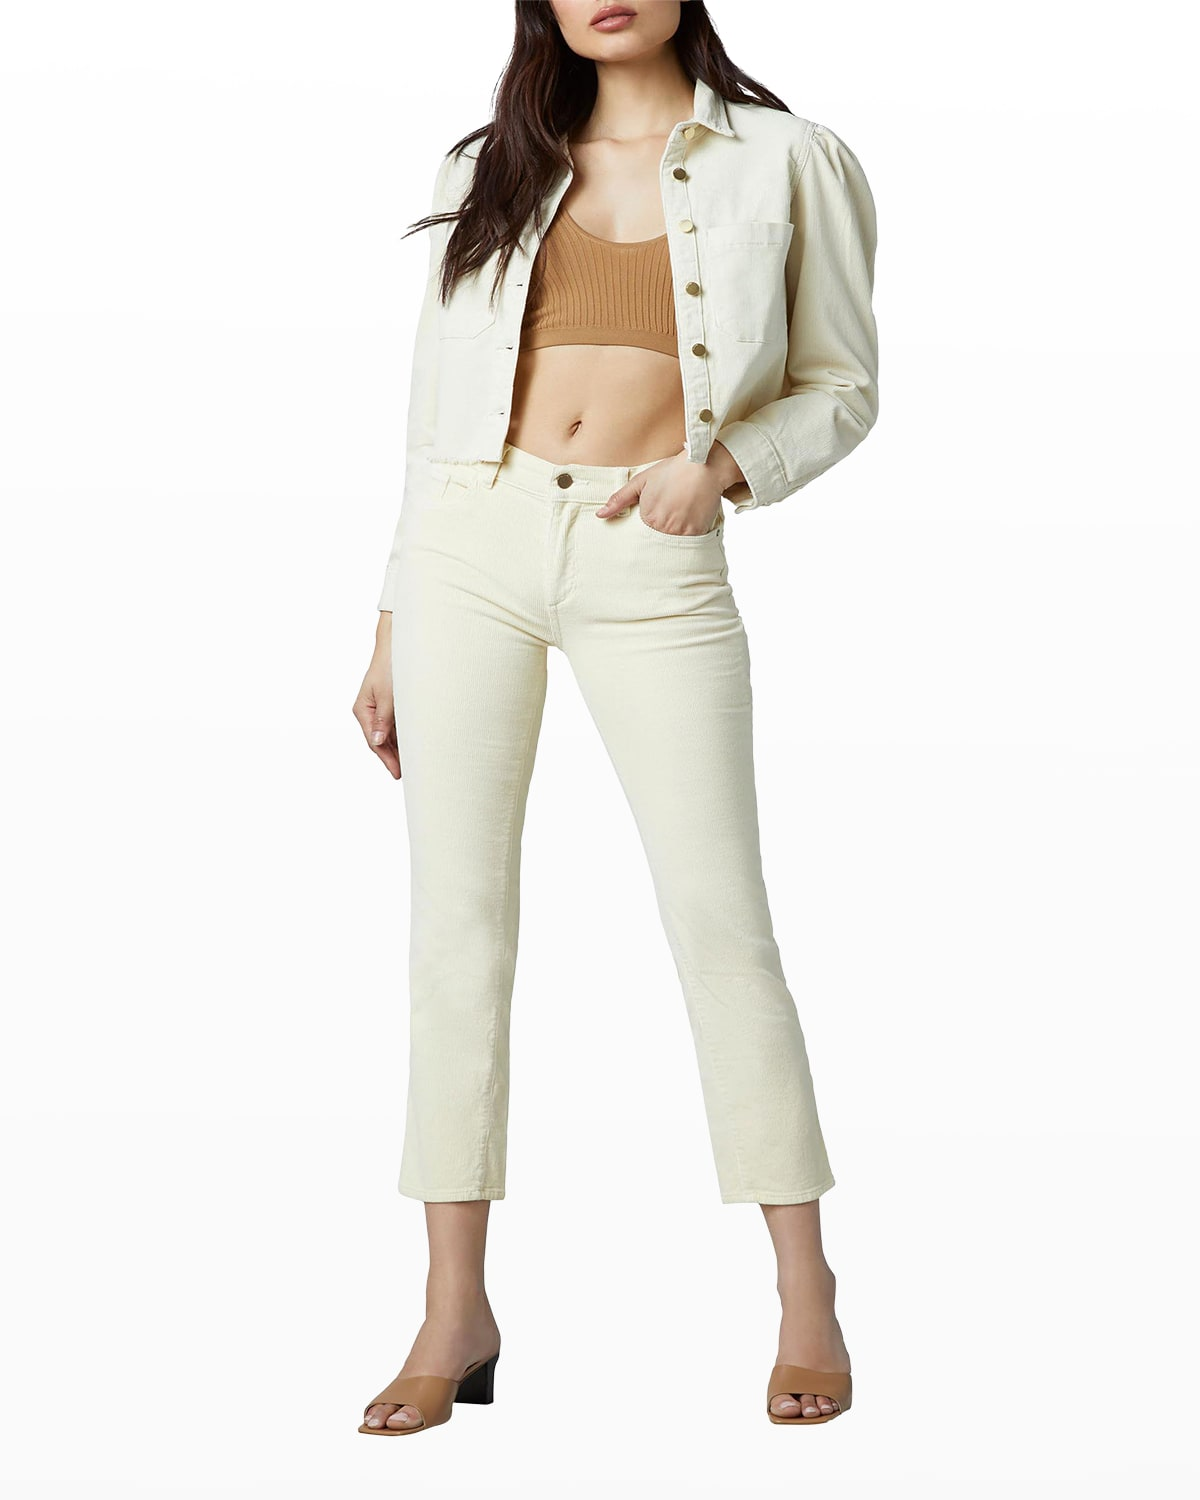 Mara Straight Mid-Rise Ankle Jeans